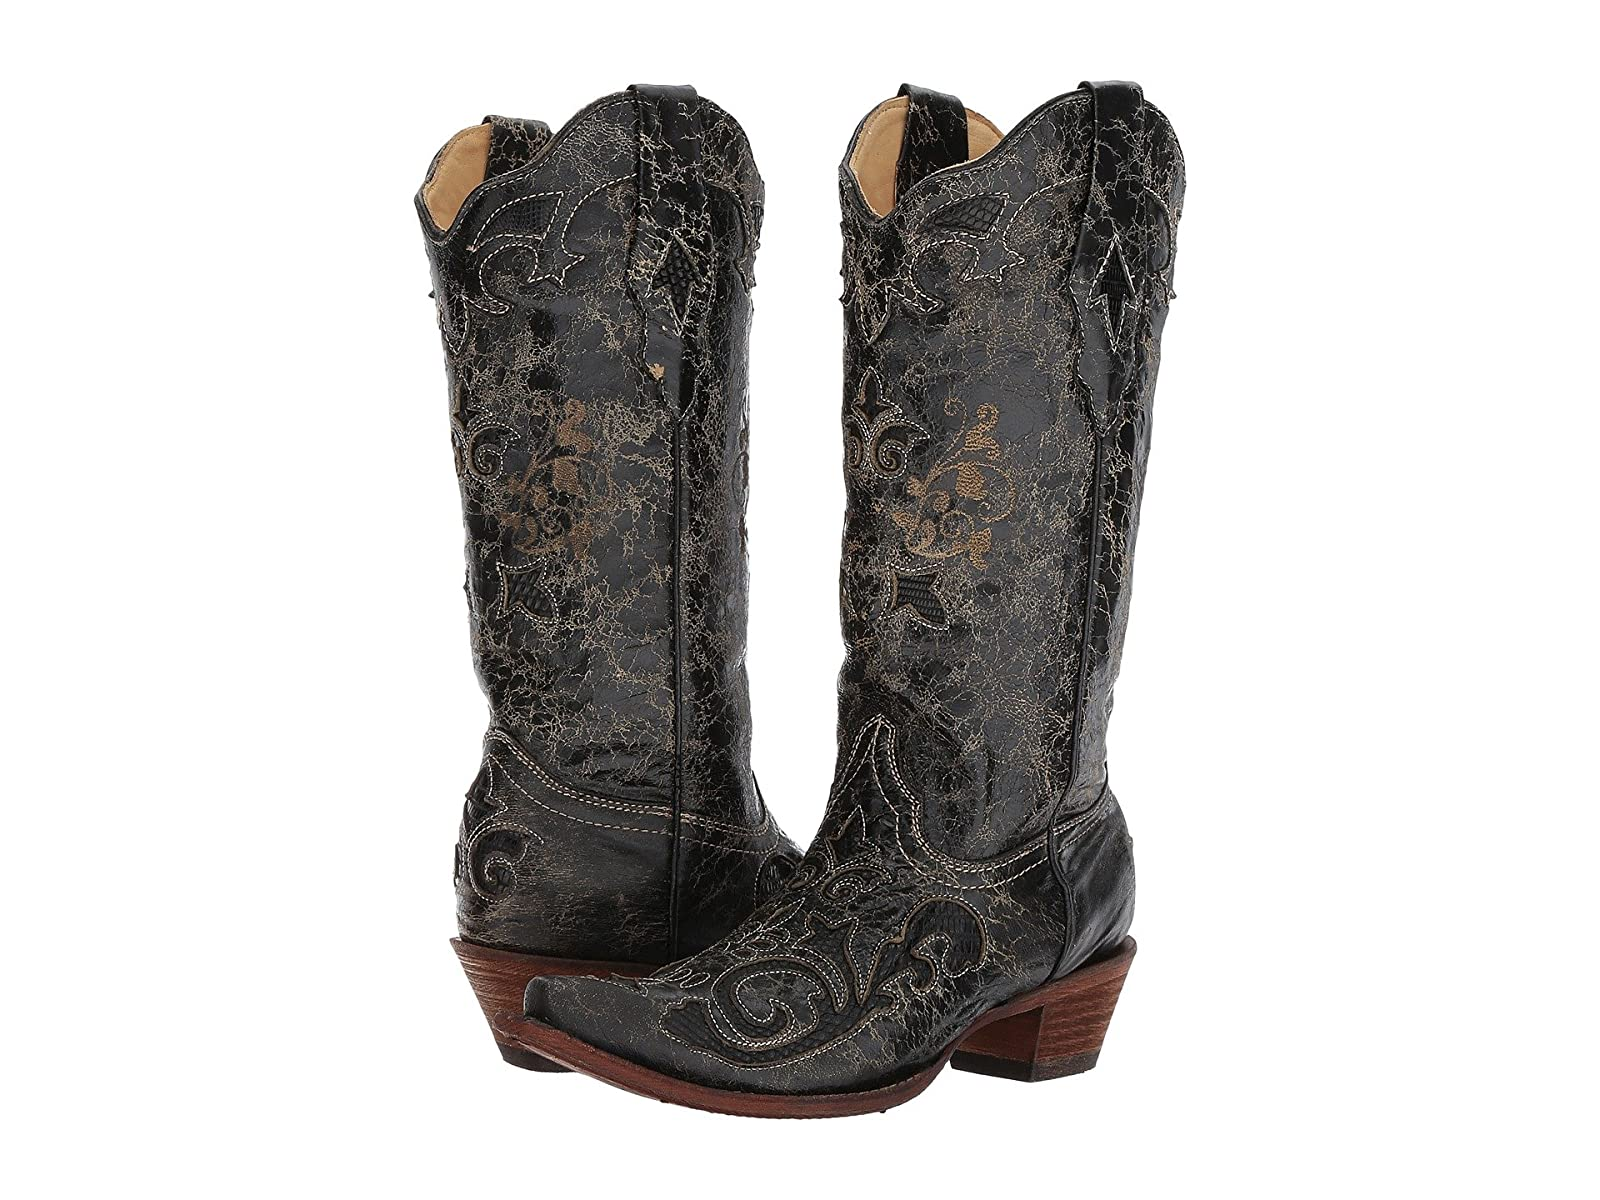 Corral Boots C1198Affordable and distinctive shoes